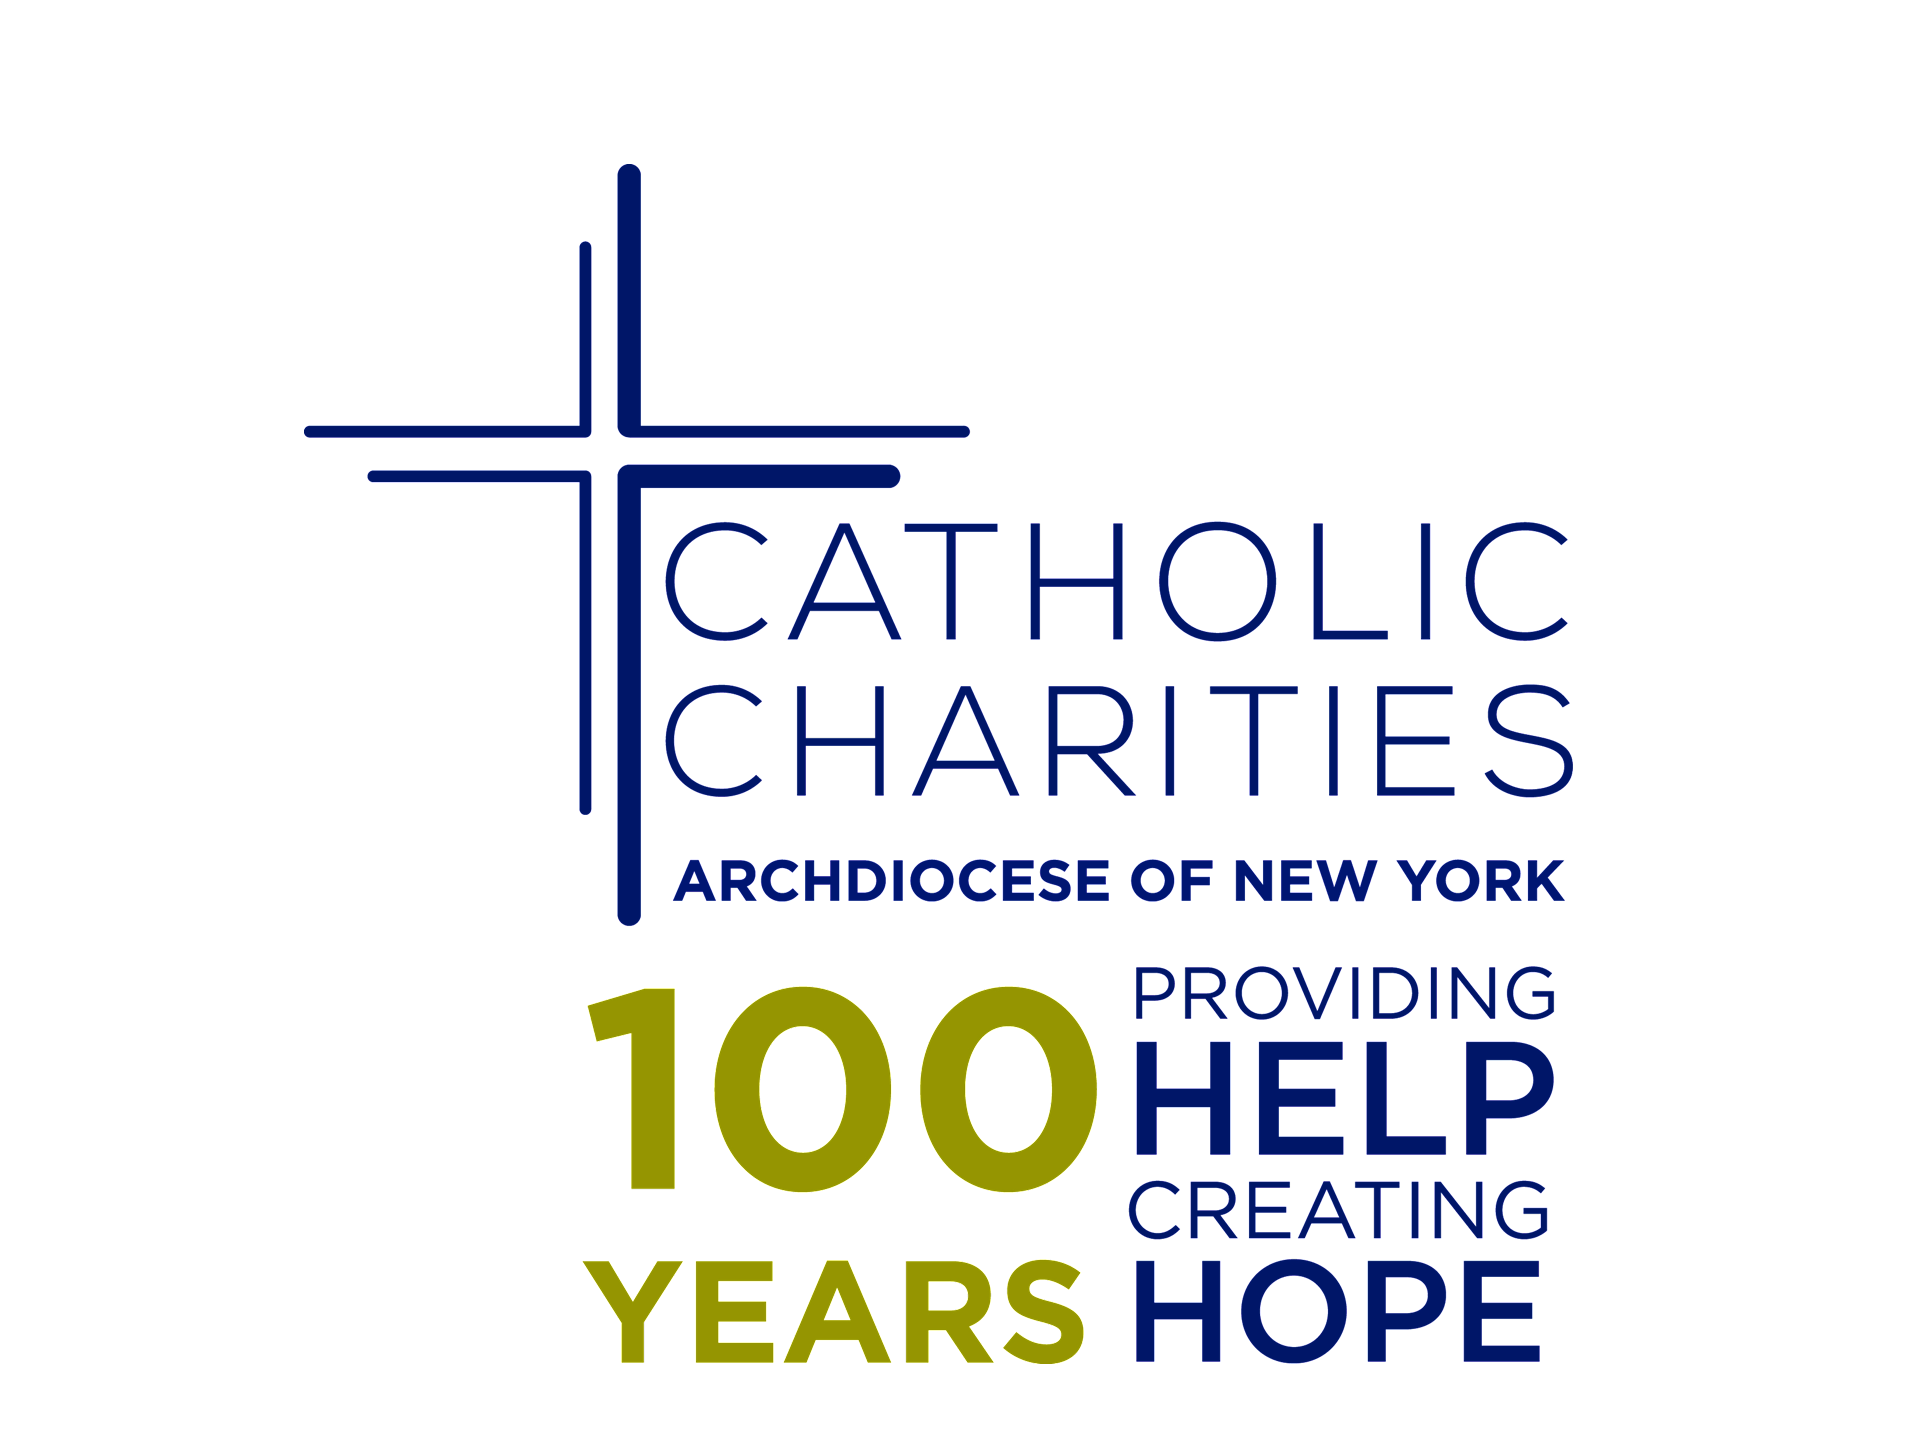 Catholic Charities of New York